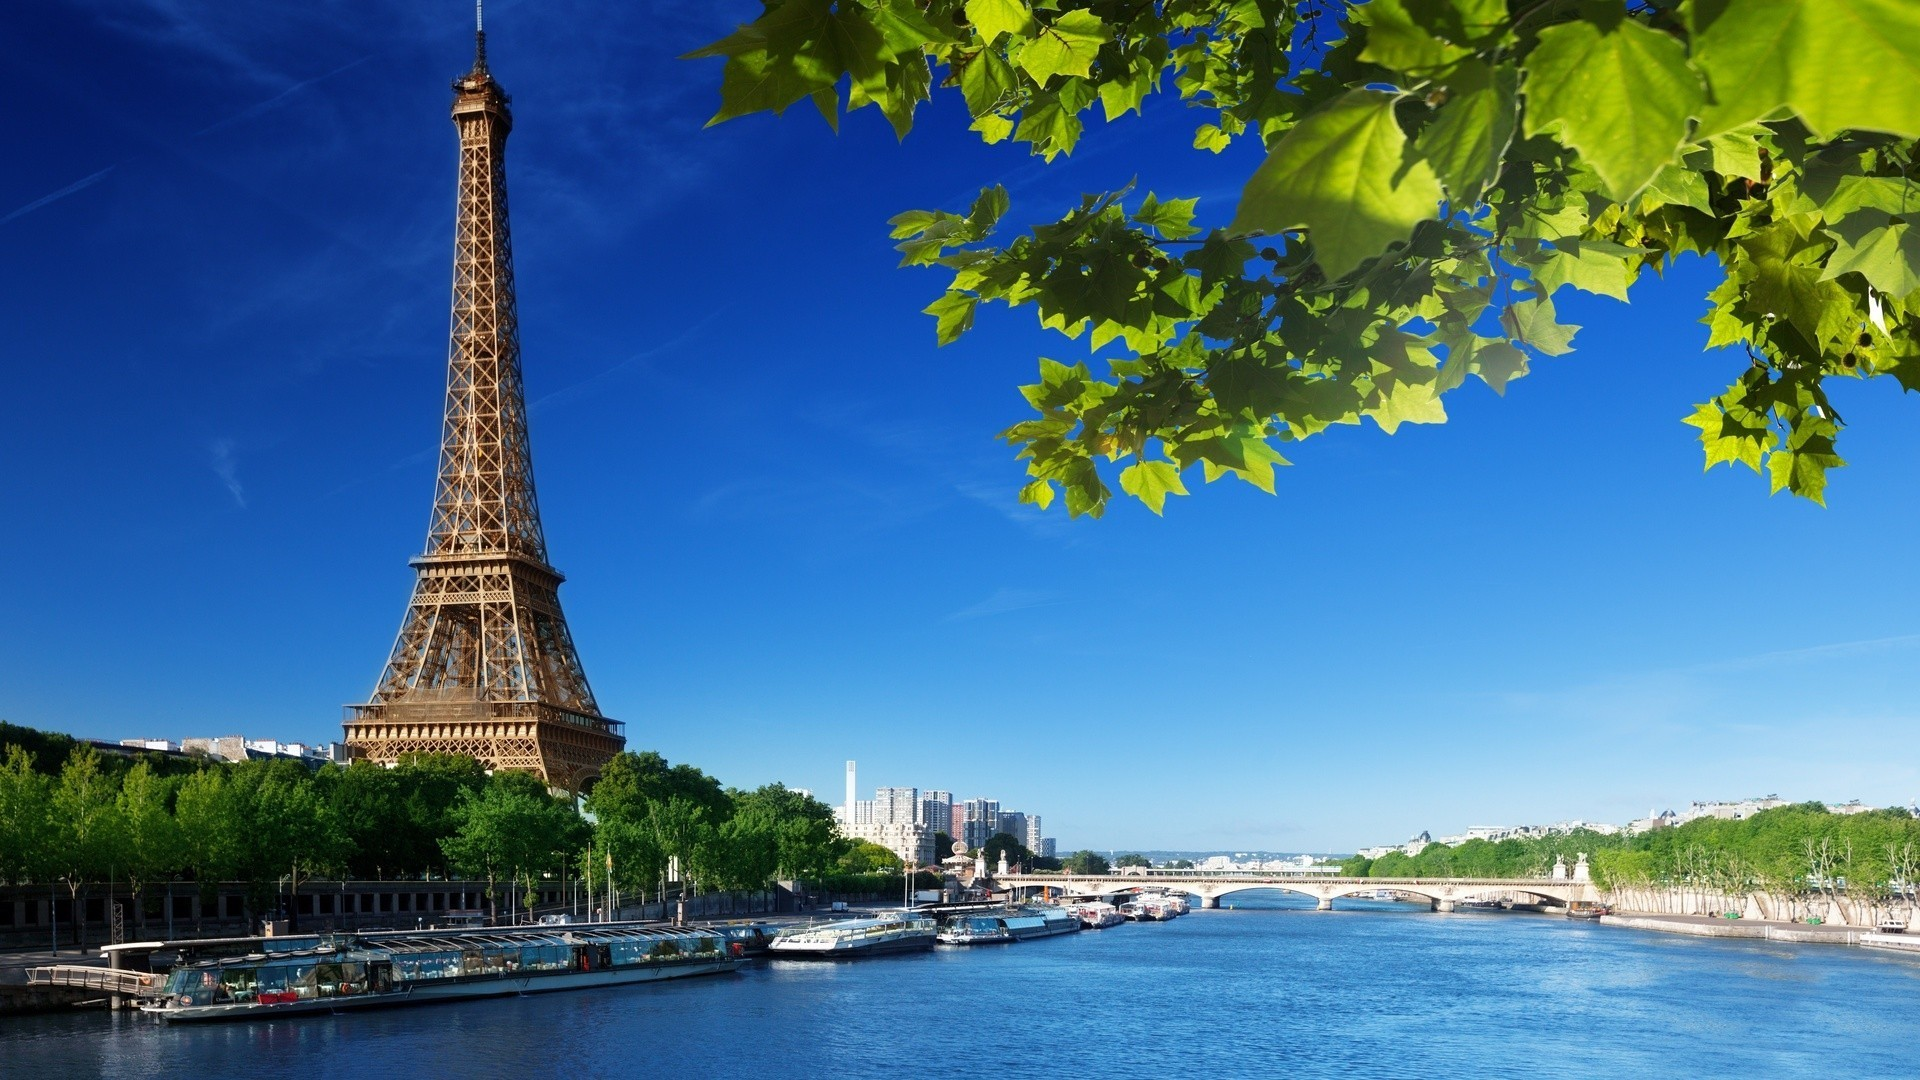 Eiffel Tower Paris Tour De France Wallpaper Allwallpaper In 10029